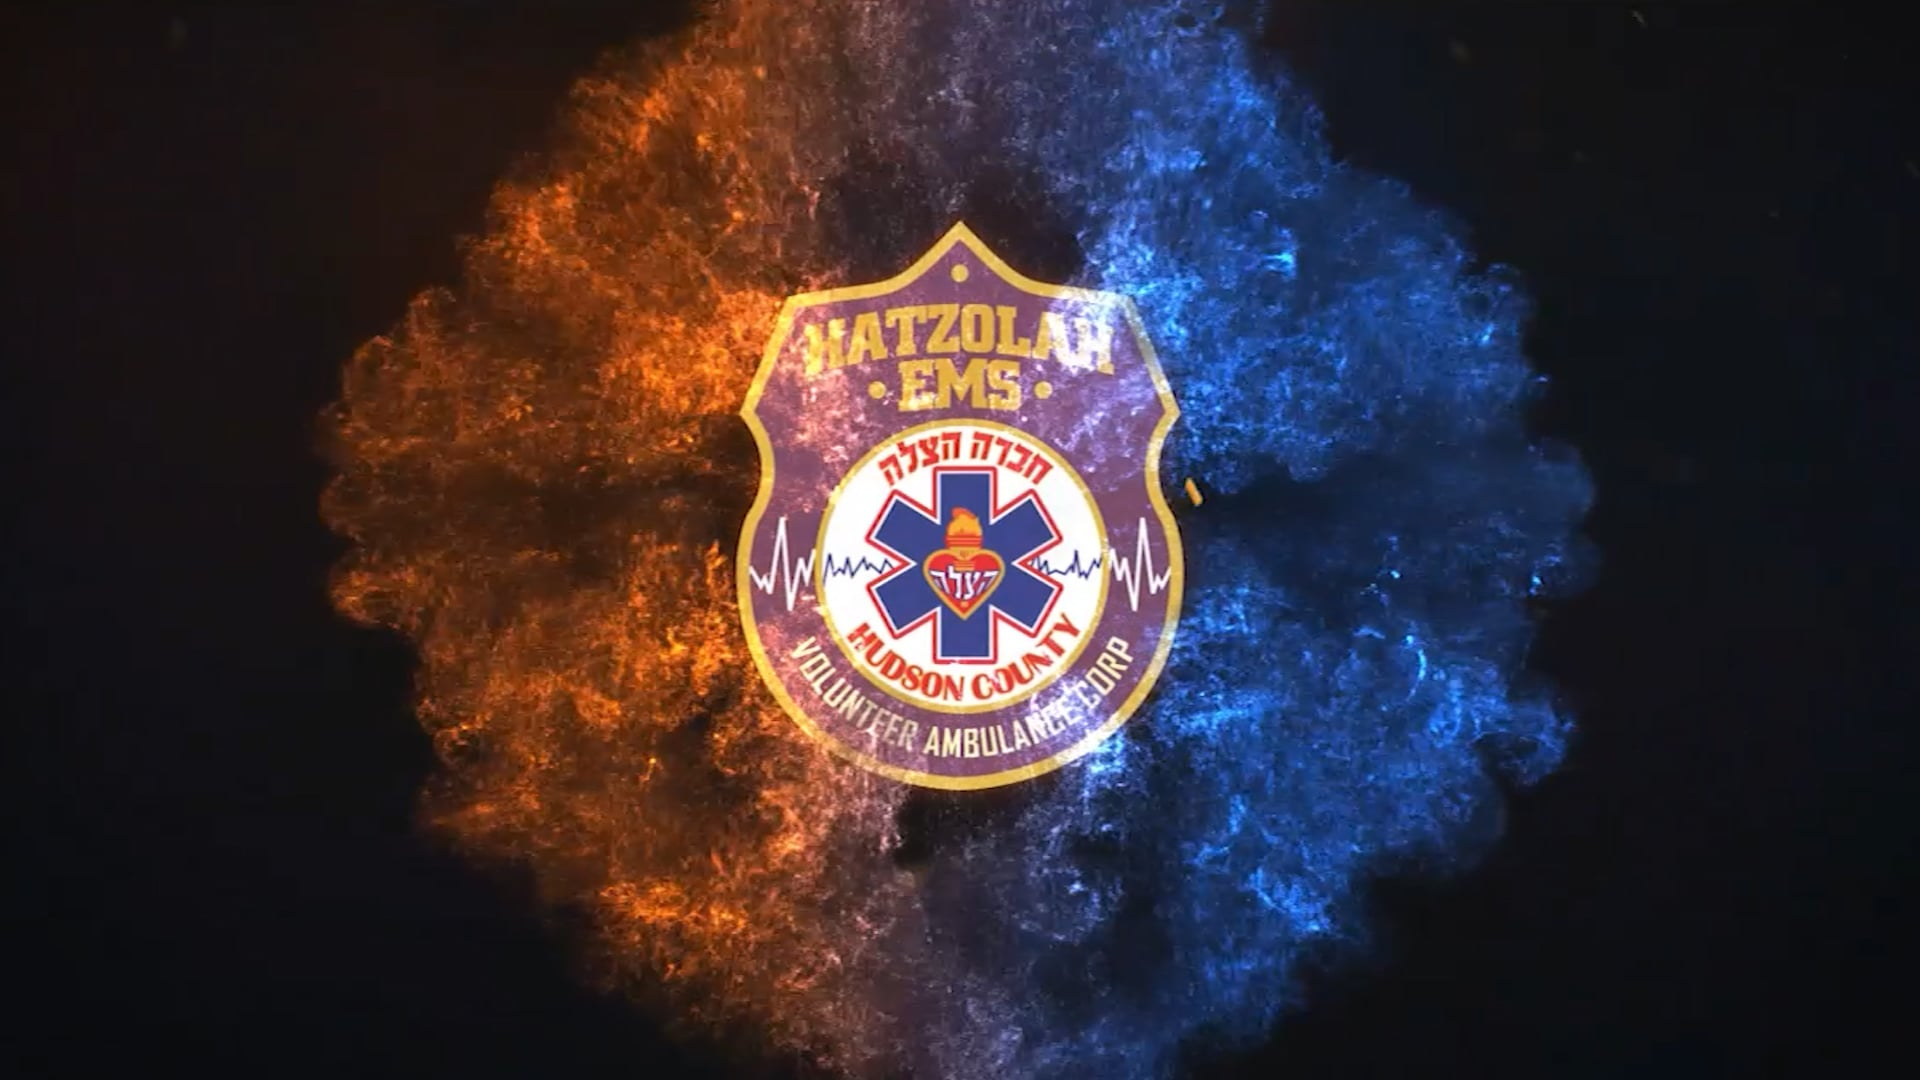 Hatzolah Of Hudson County EMS 2020 (Official video)